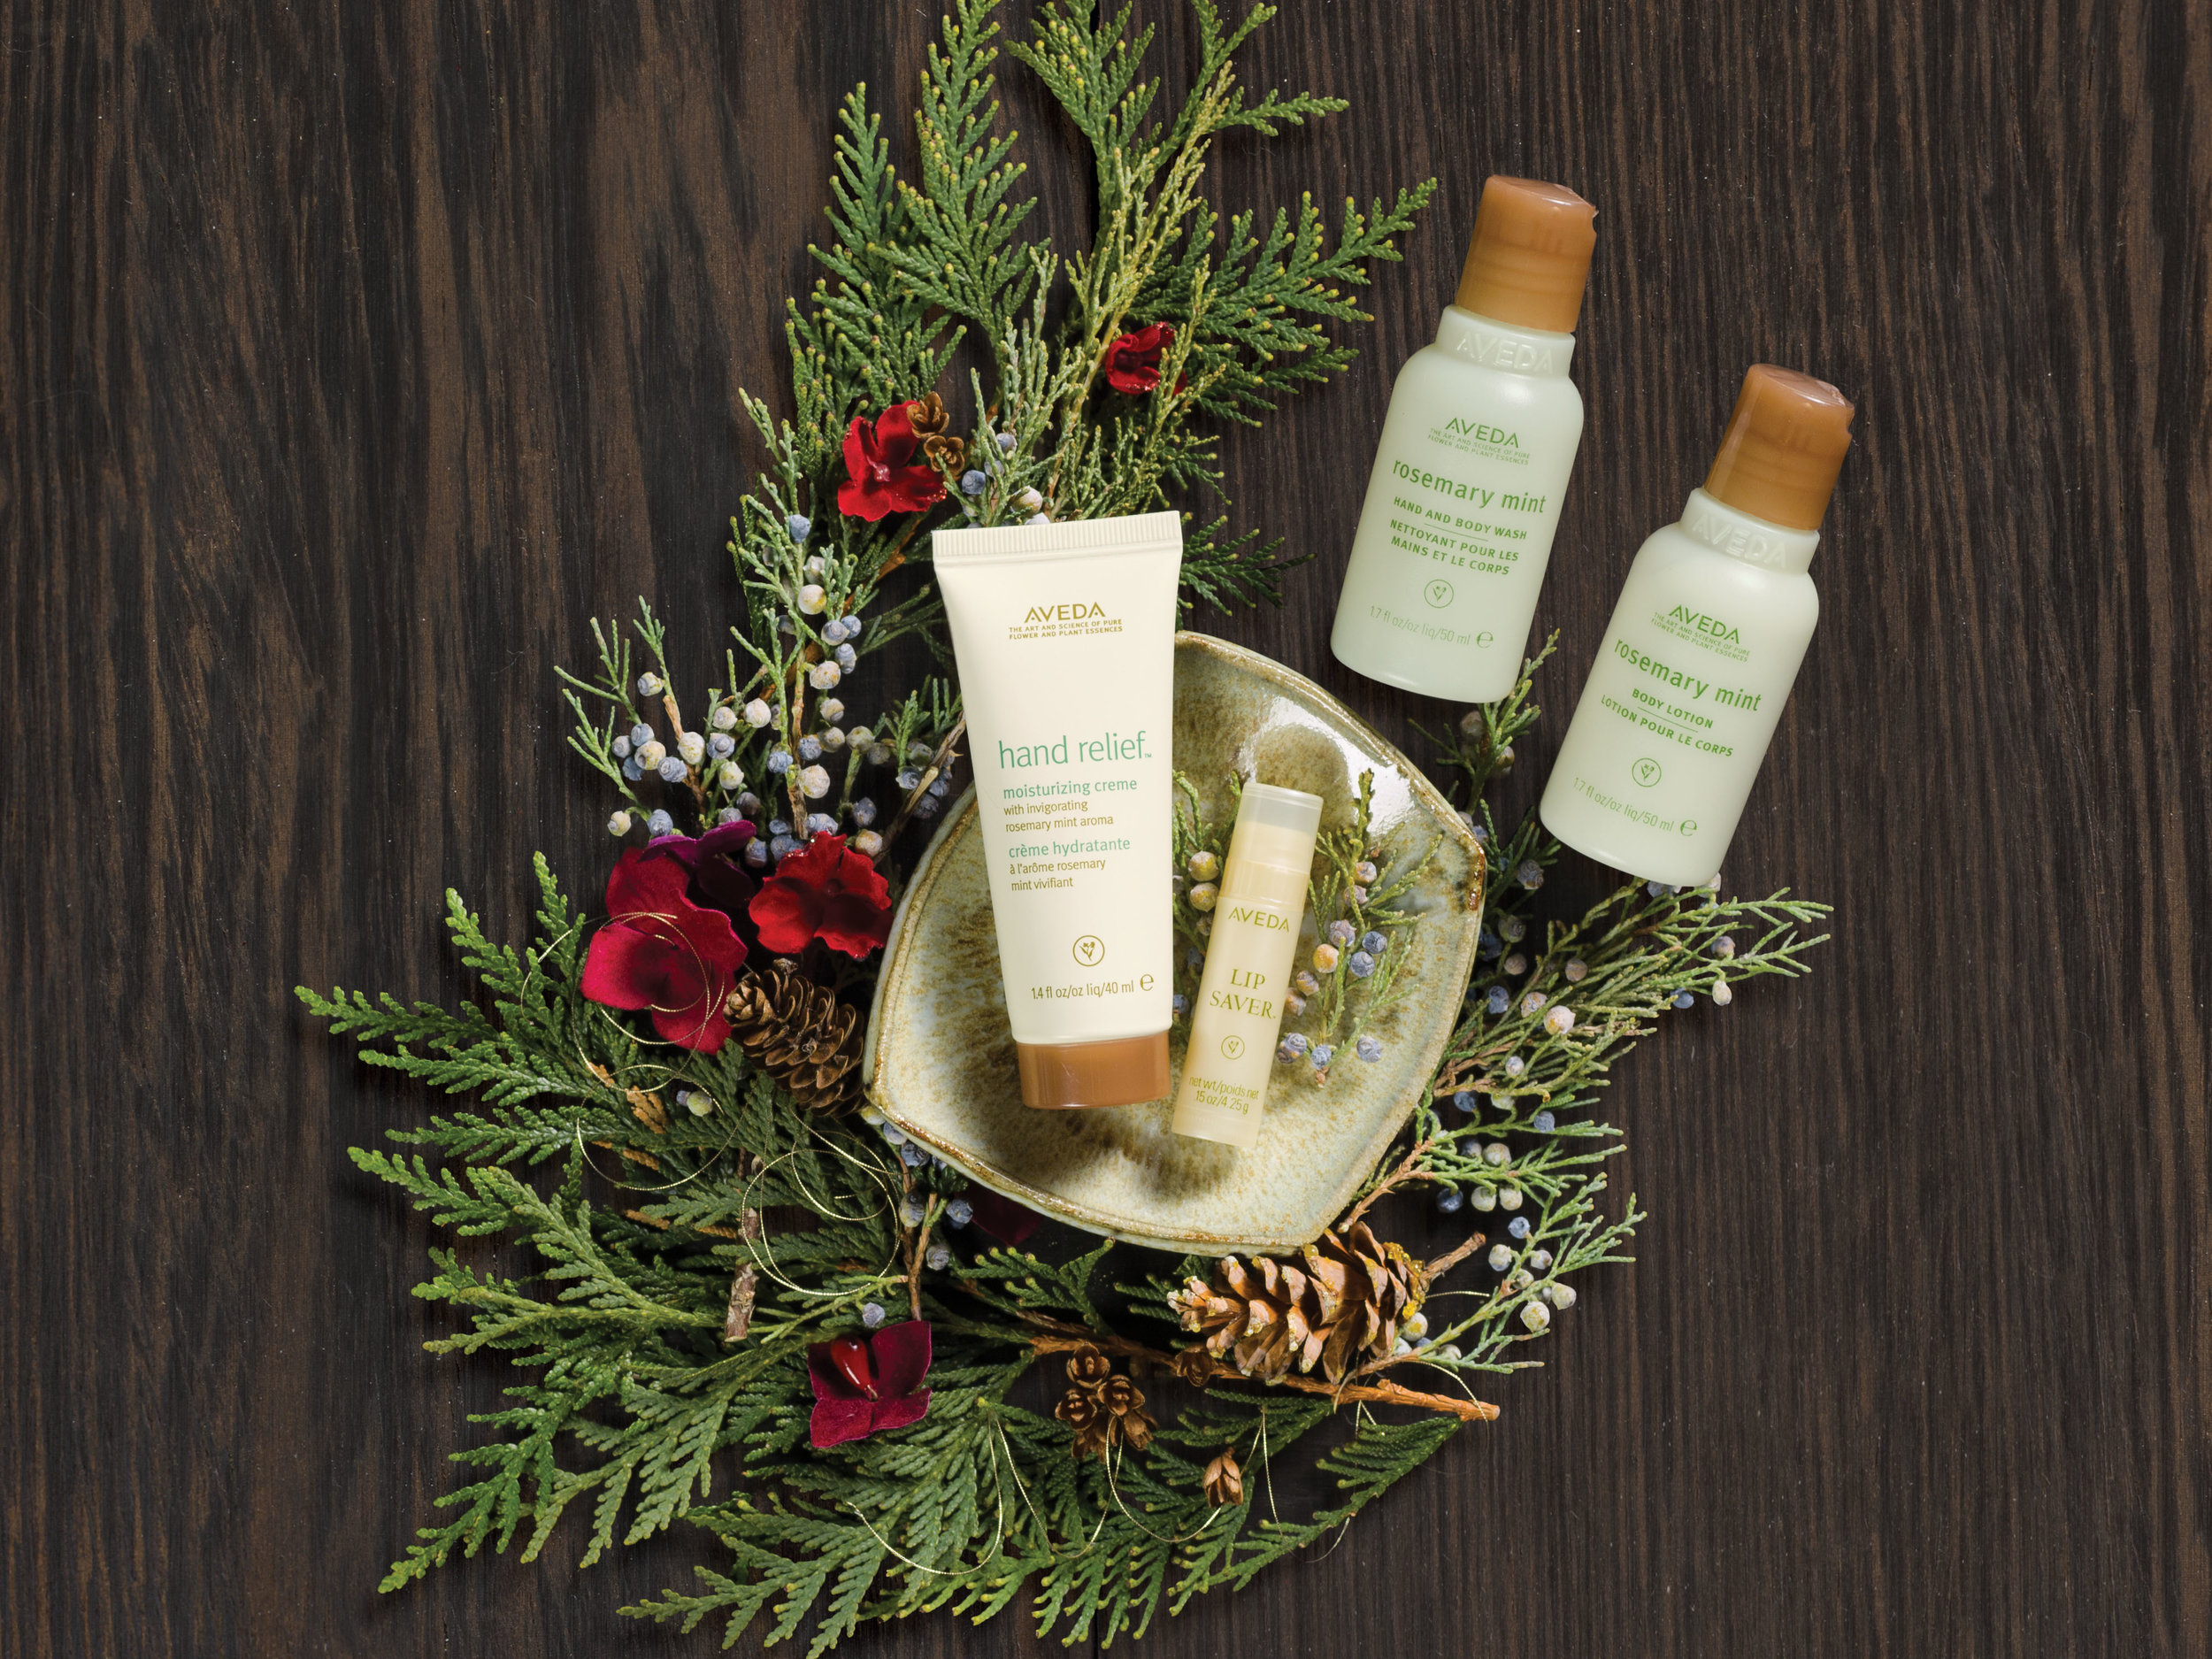 A Gift of Refresh-Mint for Your Journey: $35  rosemary mint hand and body wash, 50 ml  rosemary mint body lotion, 50 ml  hand relief™ moisturizing creme with rosemary mint aroma, 40 ml  ip saver™ 4.25 g